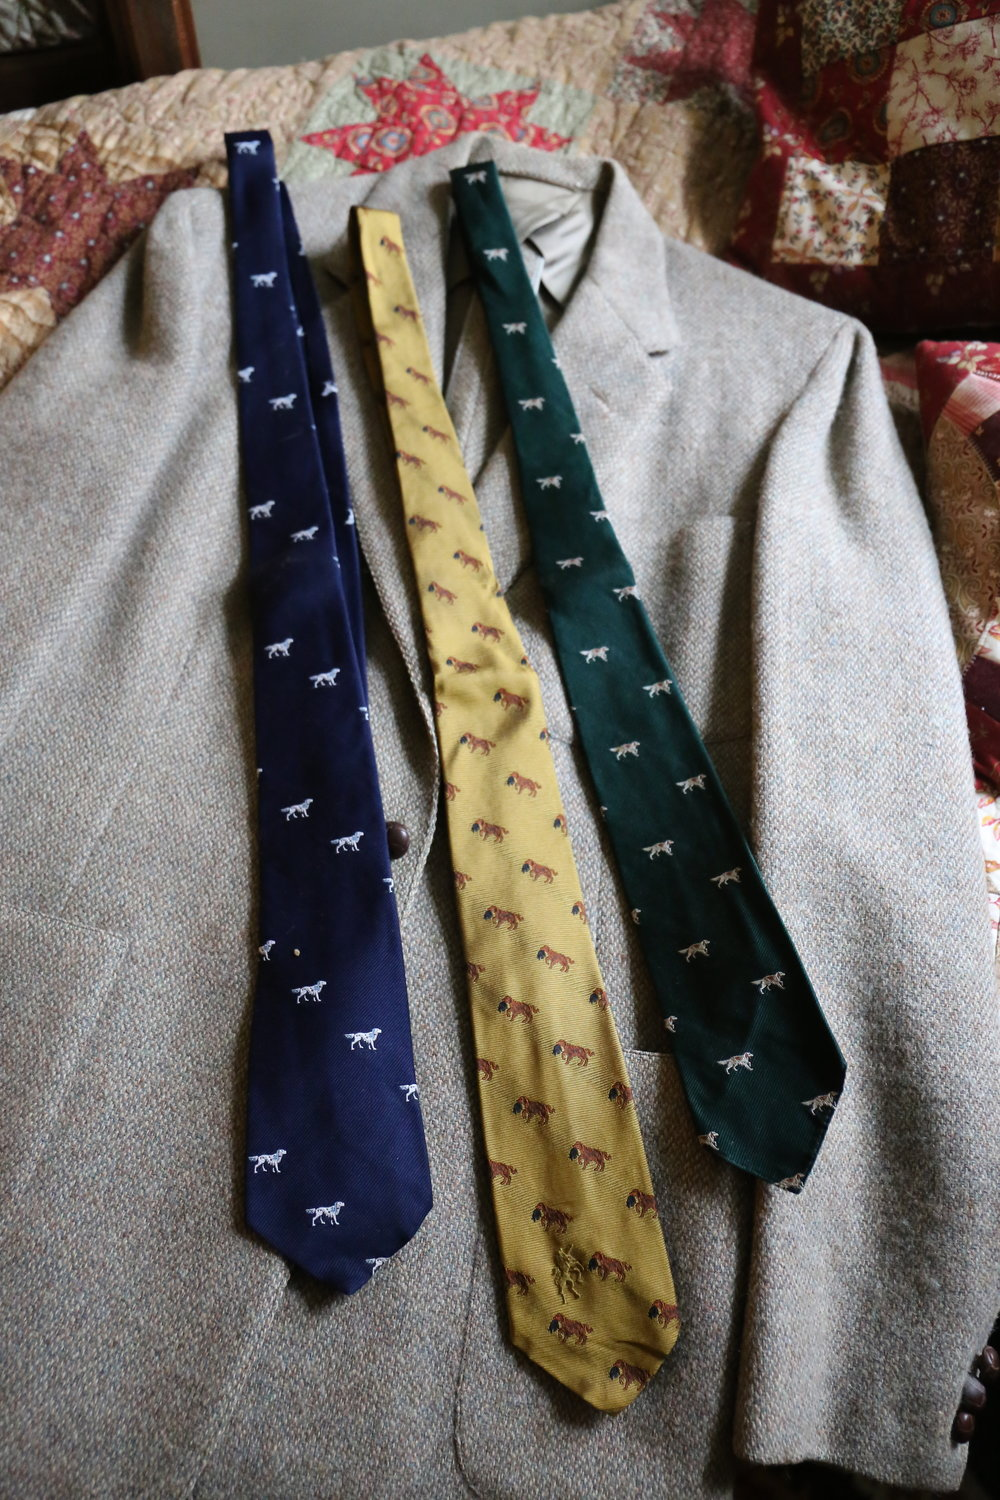 Sportcoat and setter inspired ties belonging to George Bird Evans. George and Kay would dress for dinner each night, a testament to the elegance of the life they lived at Old Hemlock.